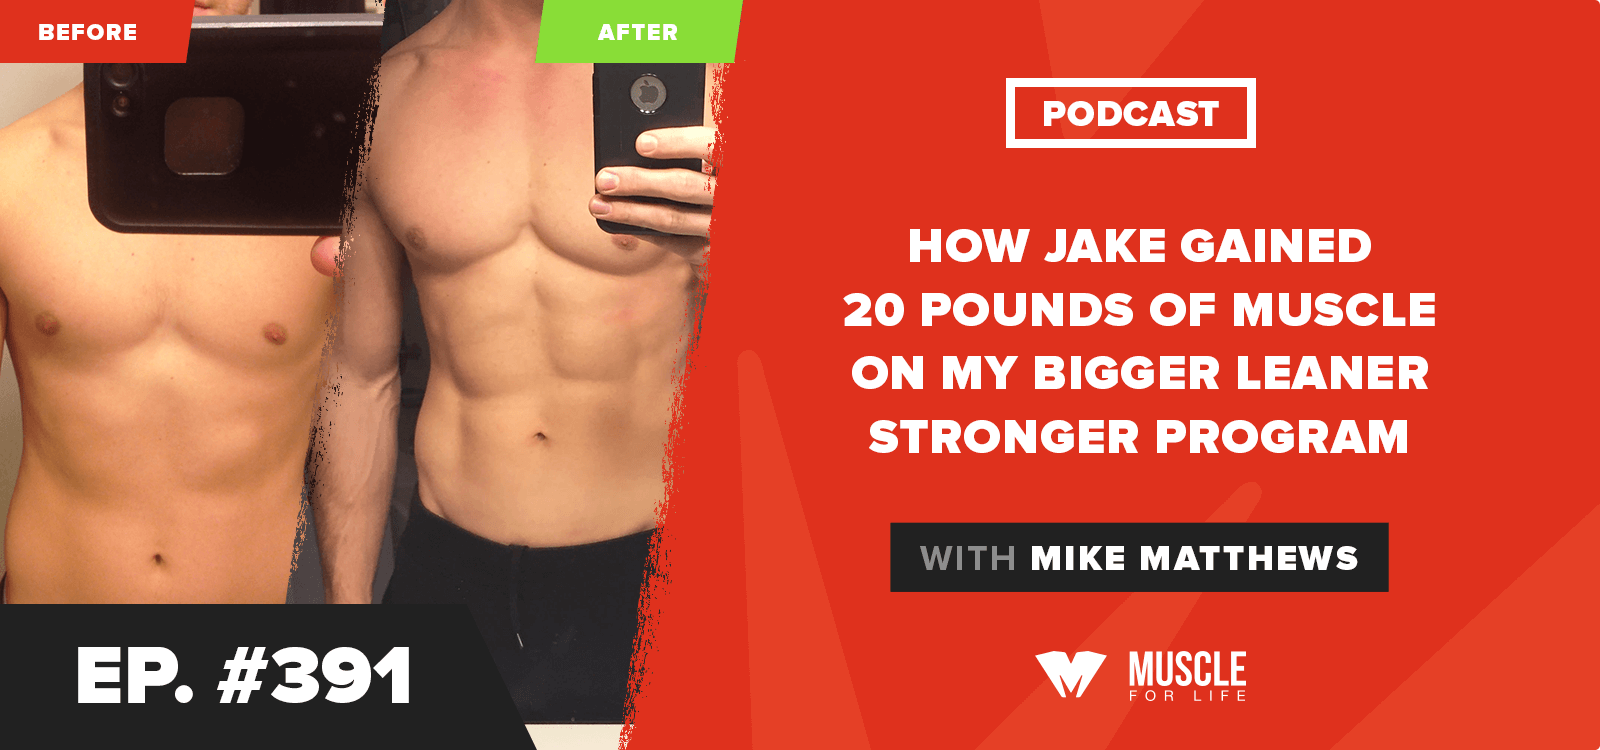 How Jake Gained 20 Pounds of Muscle on My Bigger Leaner Stronger Program